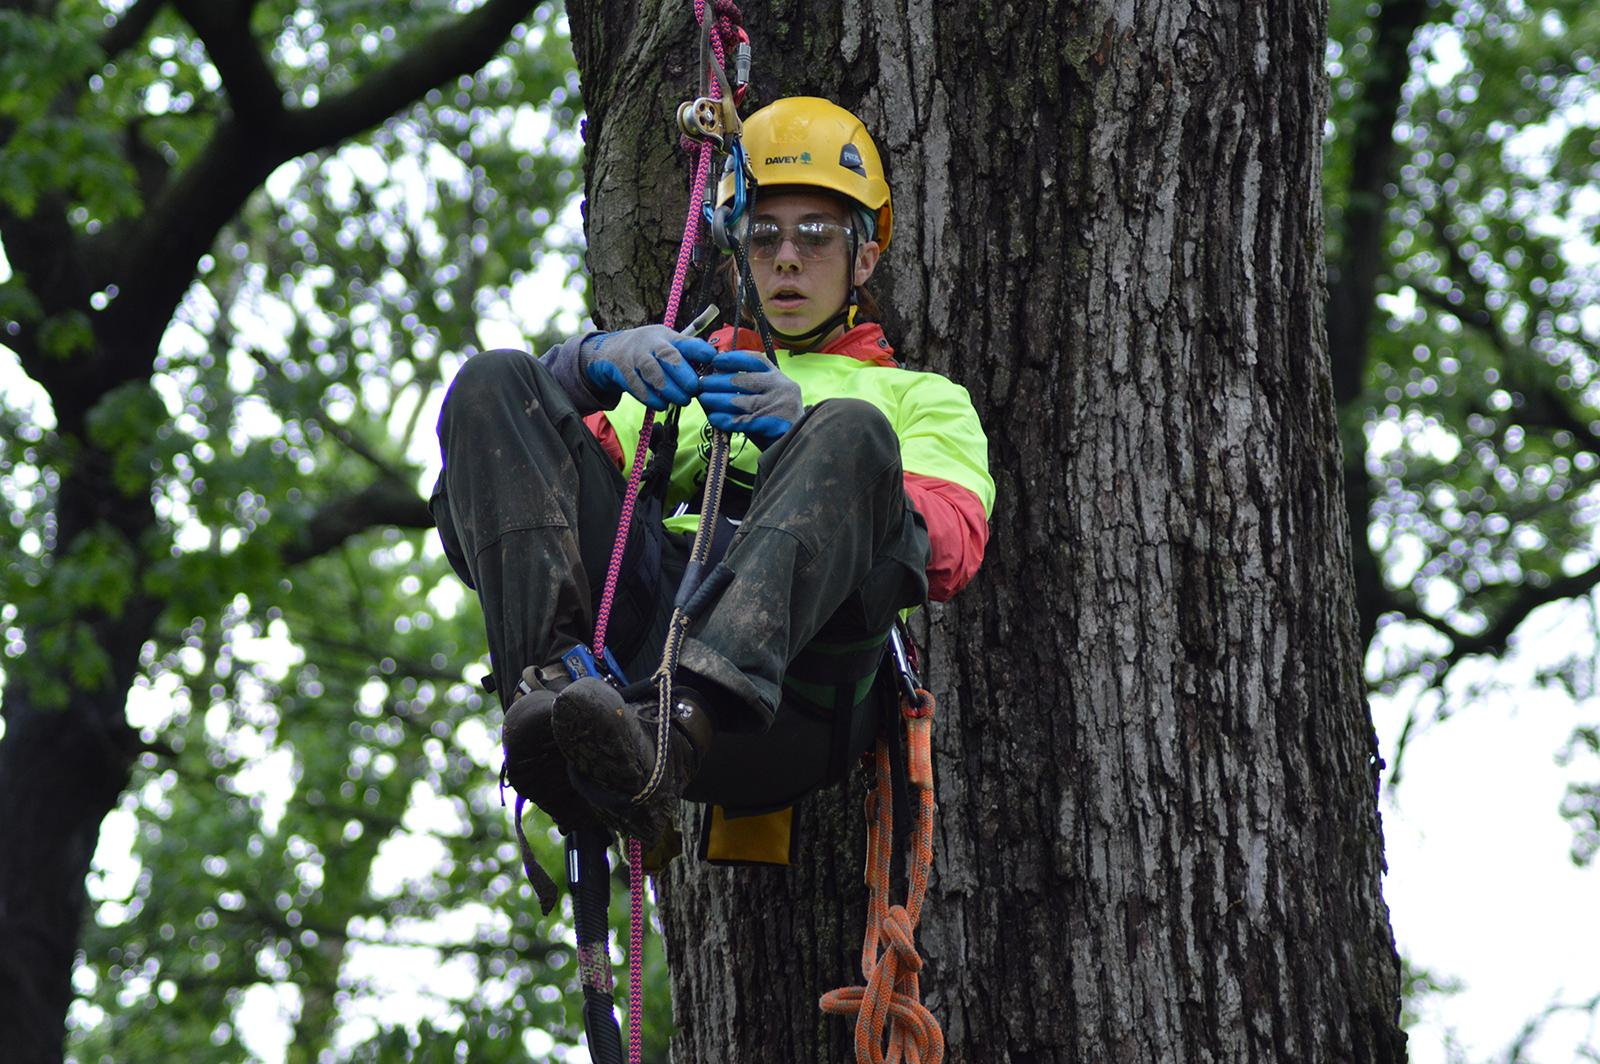 Saturday's tree-climbing event includes a demonstration for kids. (April Toney / Illinois Arborist Association)